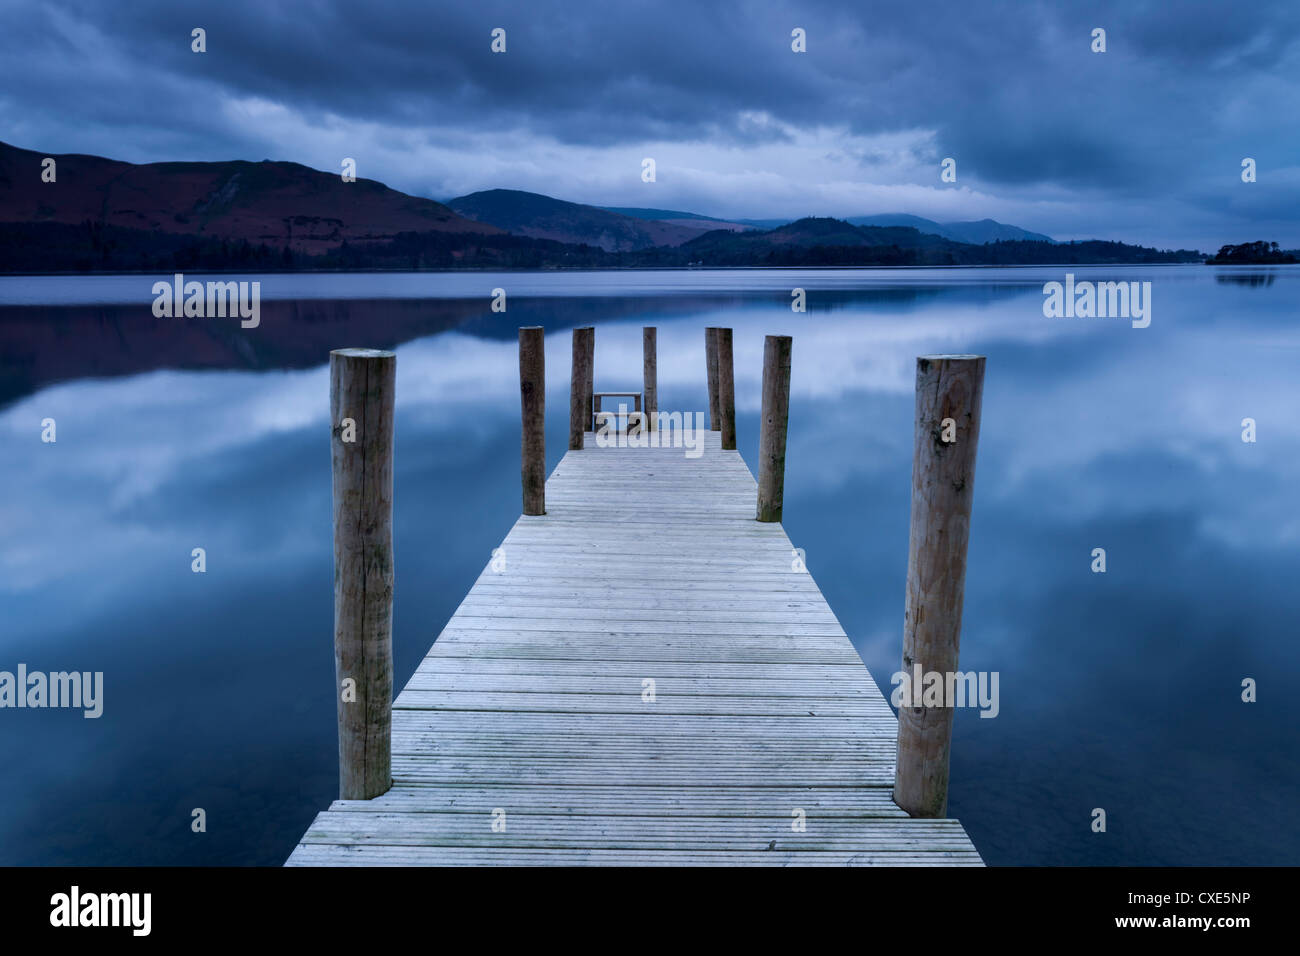 Morgendämmerung am Ashness Landung Steg auf Derwentwater, Keswick, Nationalpark Lake District, Cumbria, England, Stockbild